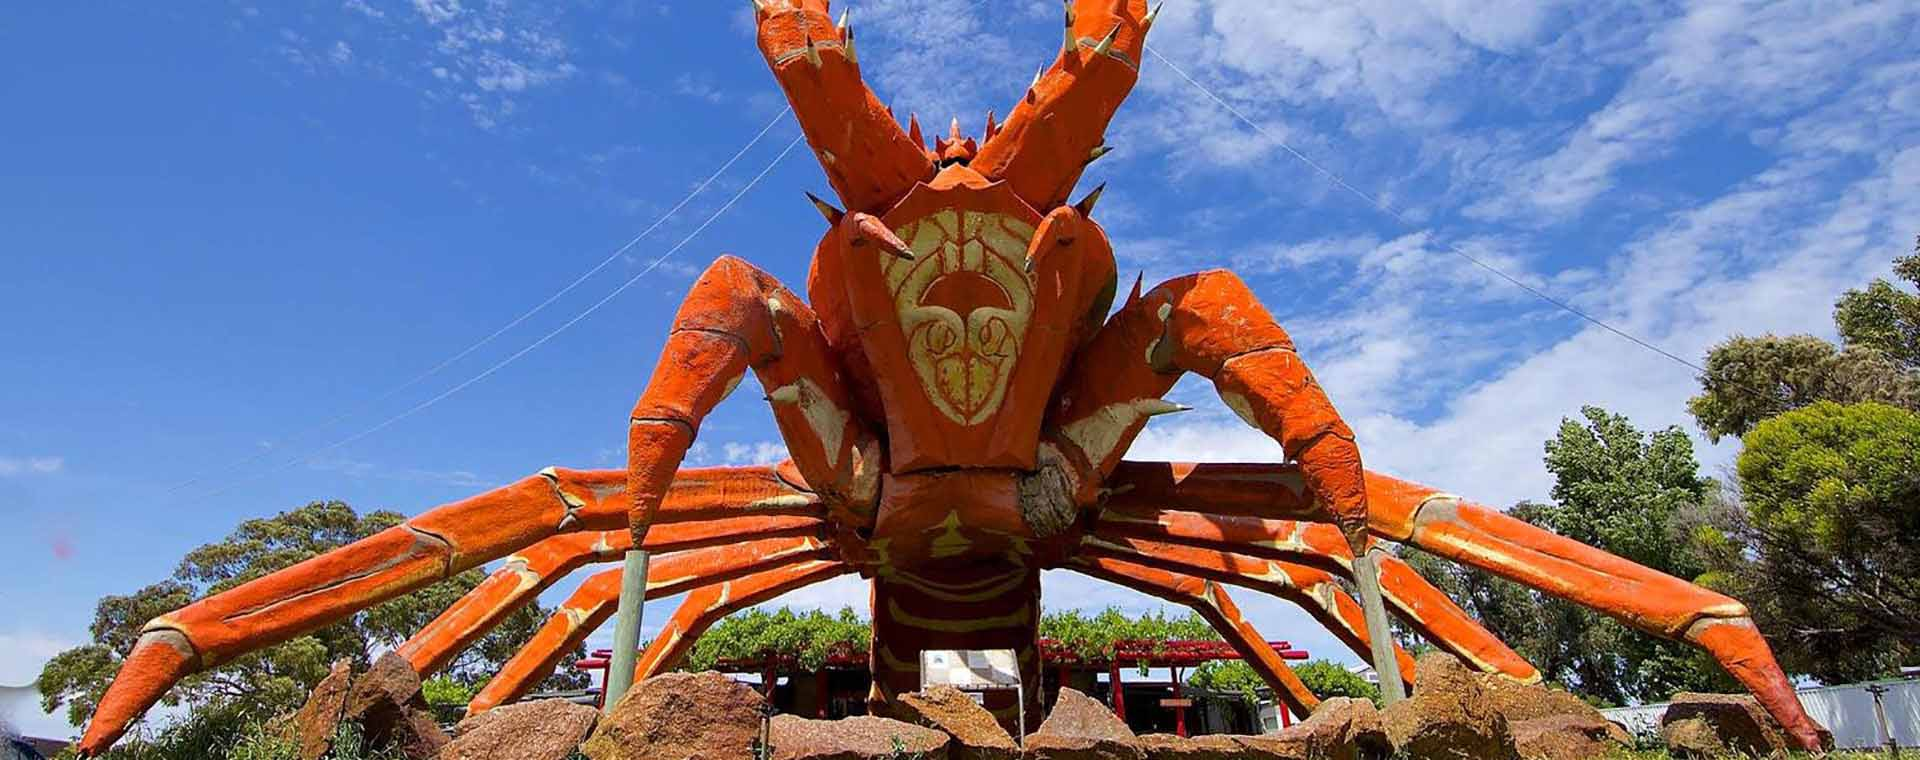 Larry the Lobster, Kingston, Limestone Coast